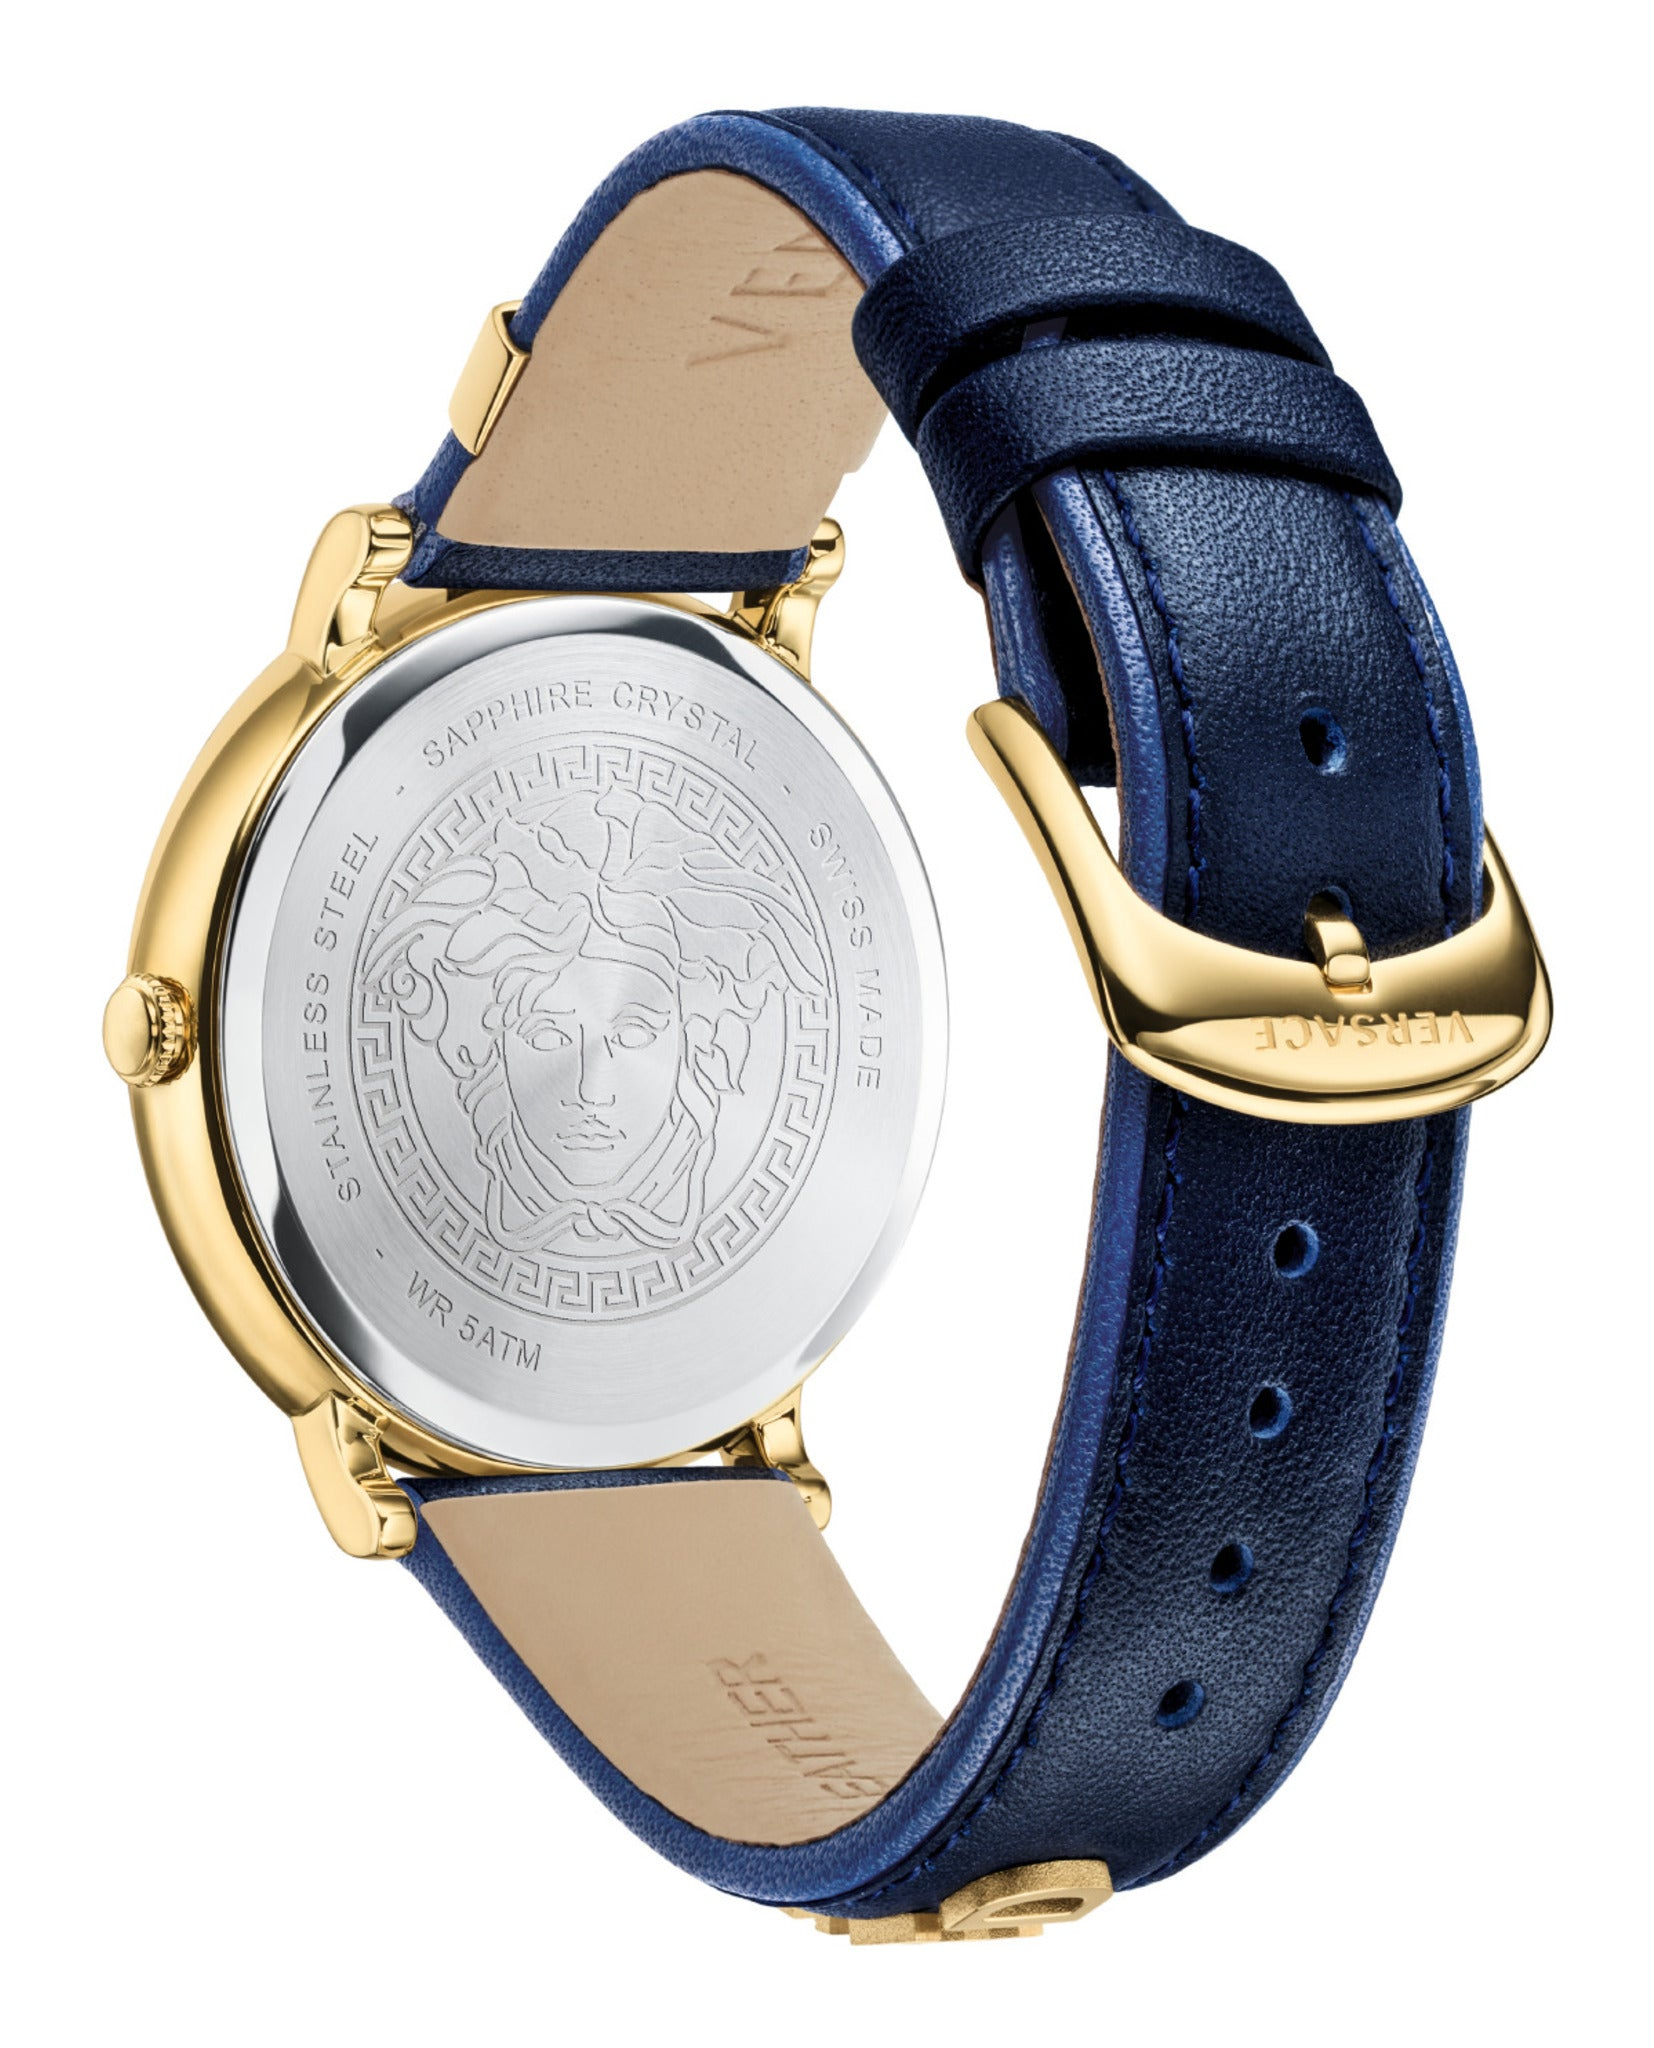 Versace V-Circle - The Manifesto Edition Watch